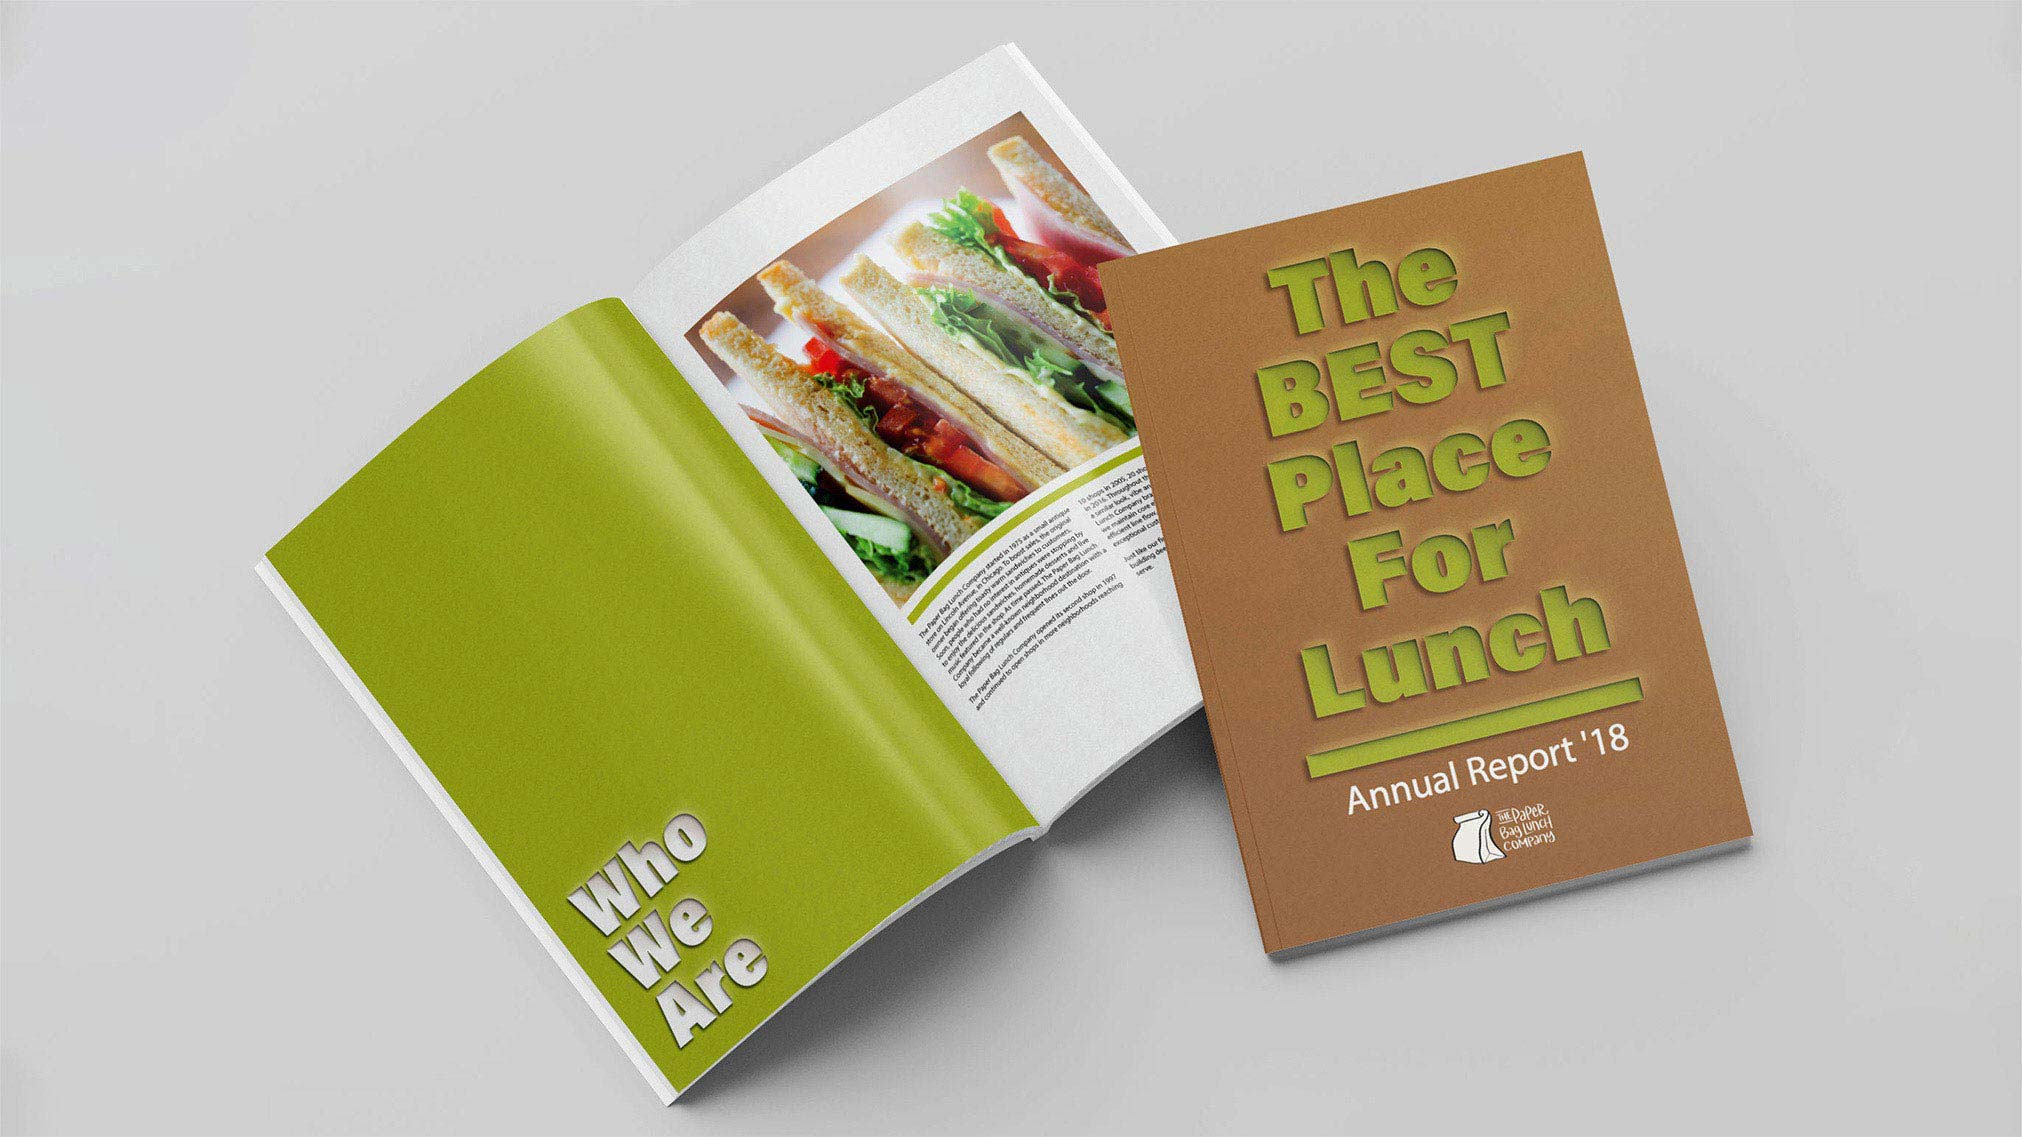 Designed an annual report book for